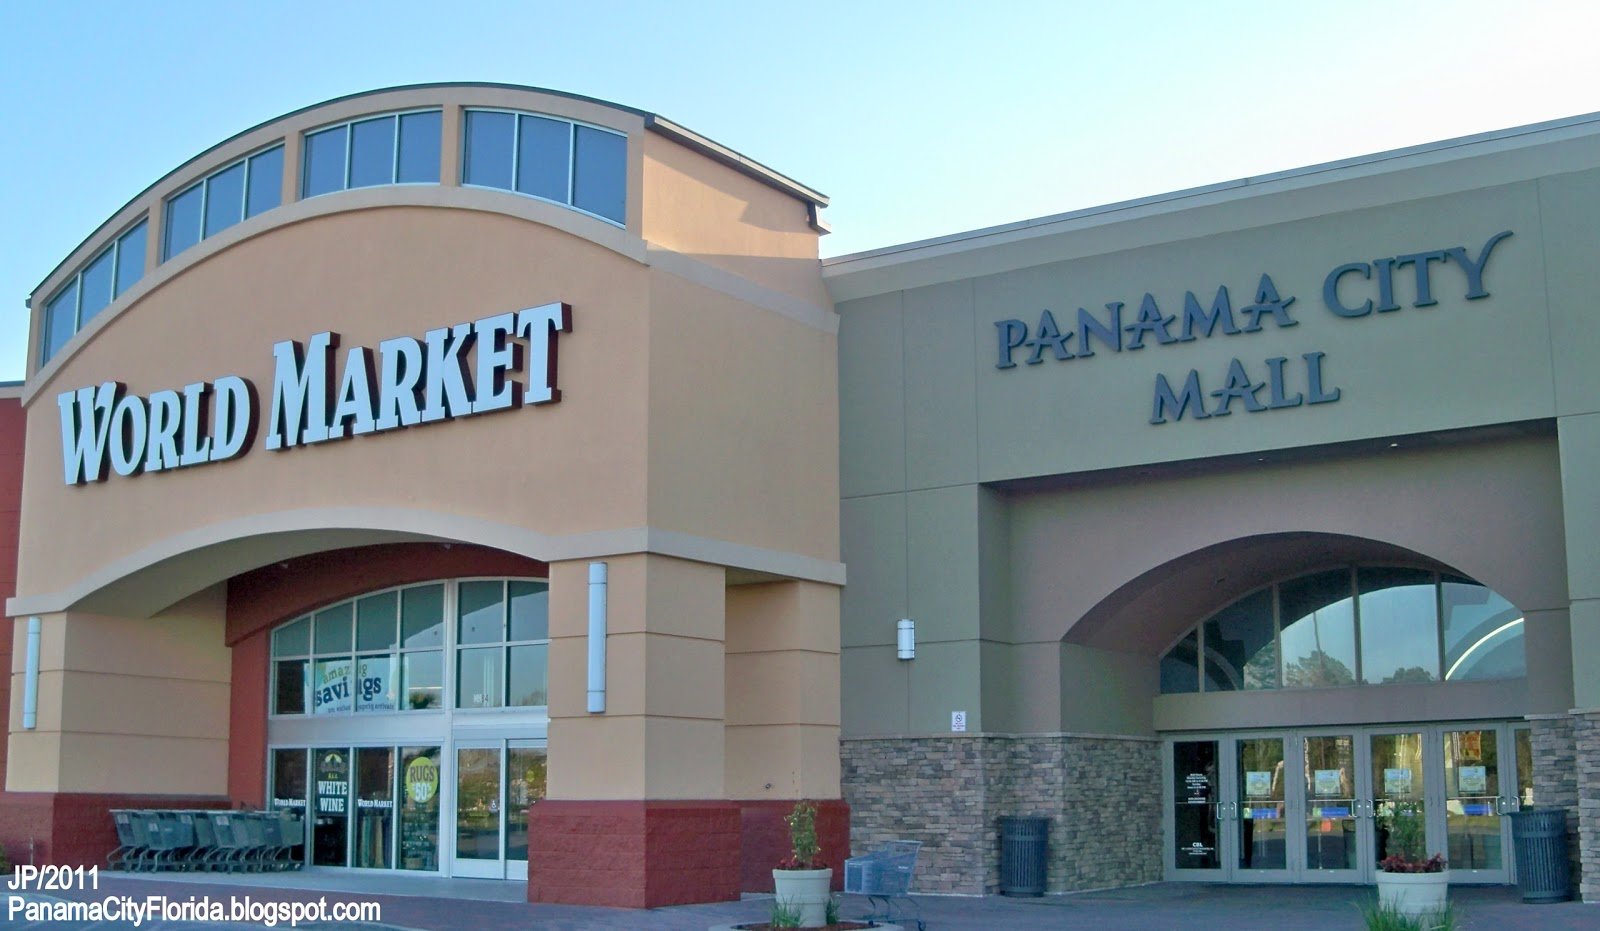 World Market Store Panama City Florida Panama City Florida Mall Martin Luther King Jr Blvd World Market Home Decor Furniture Panama City Florida Mall